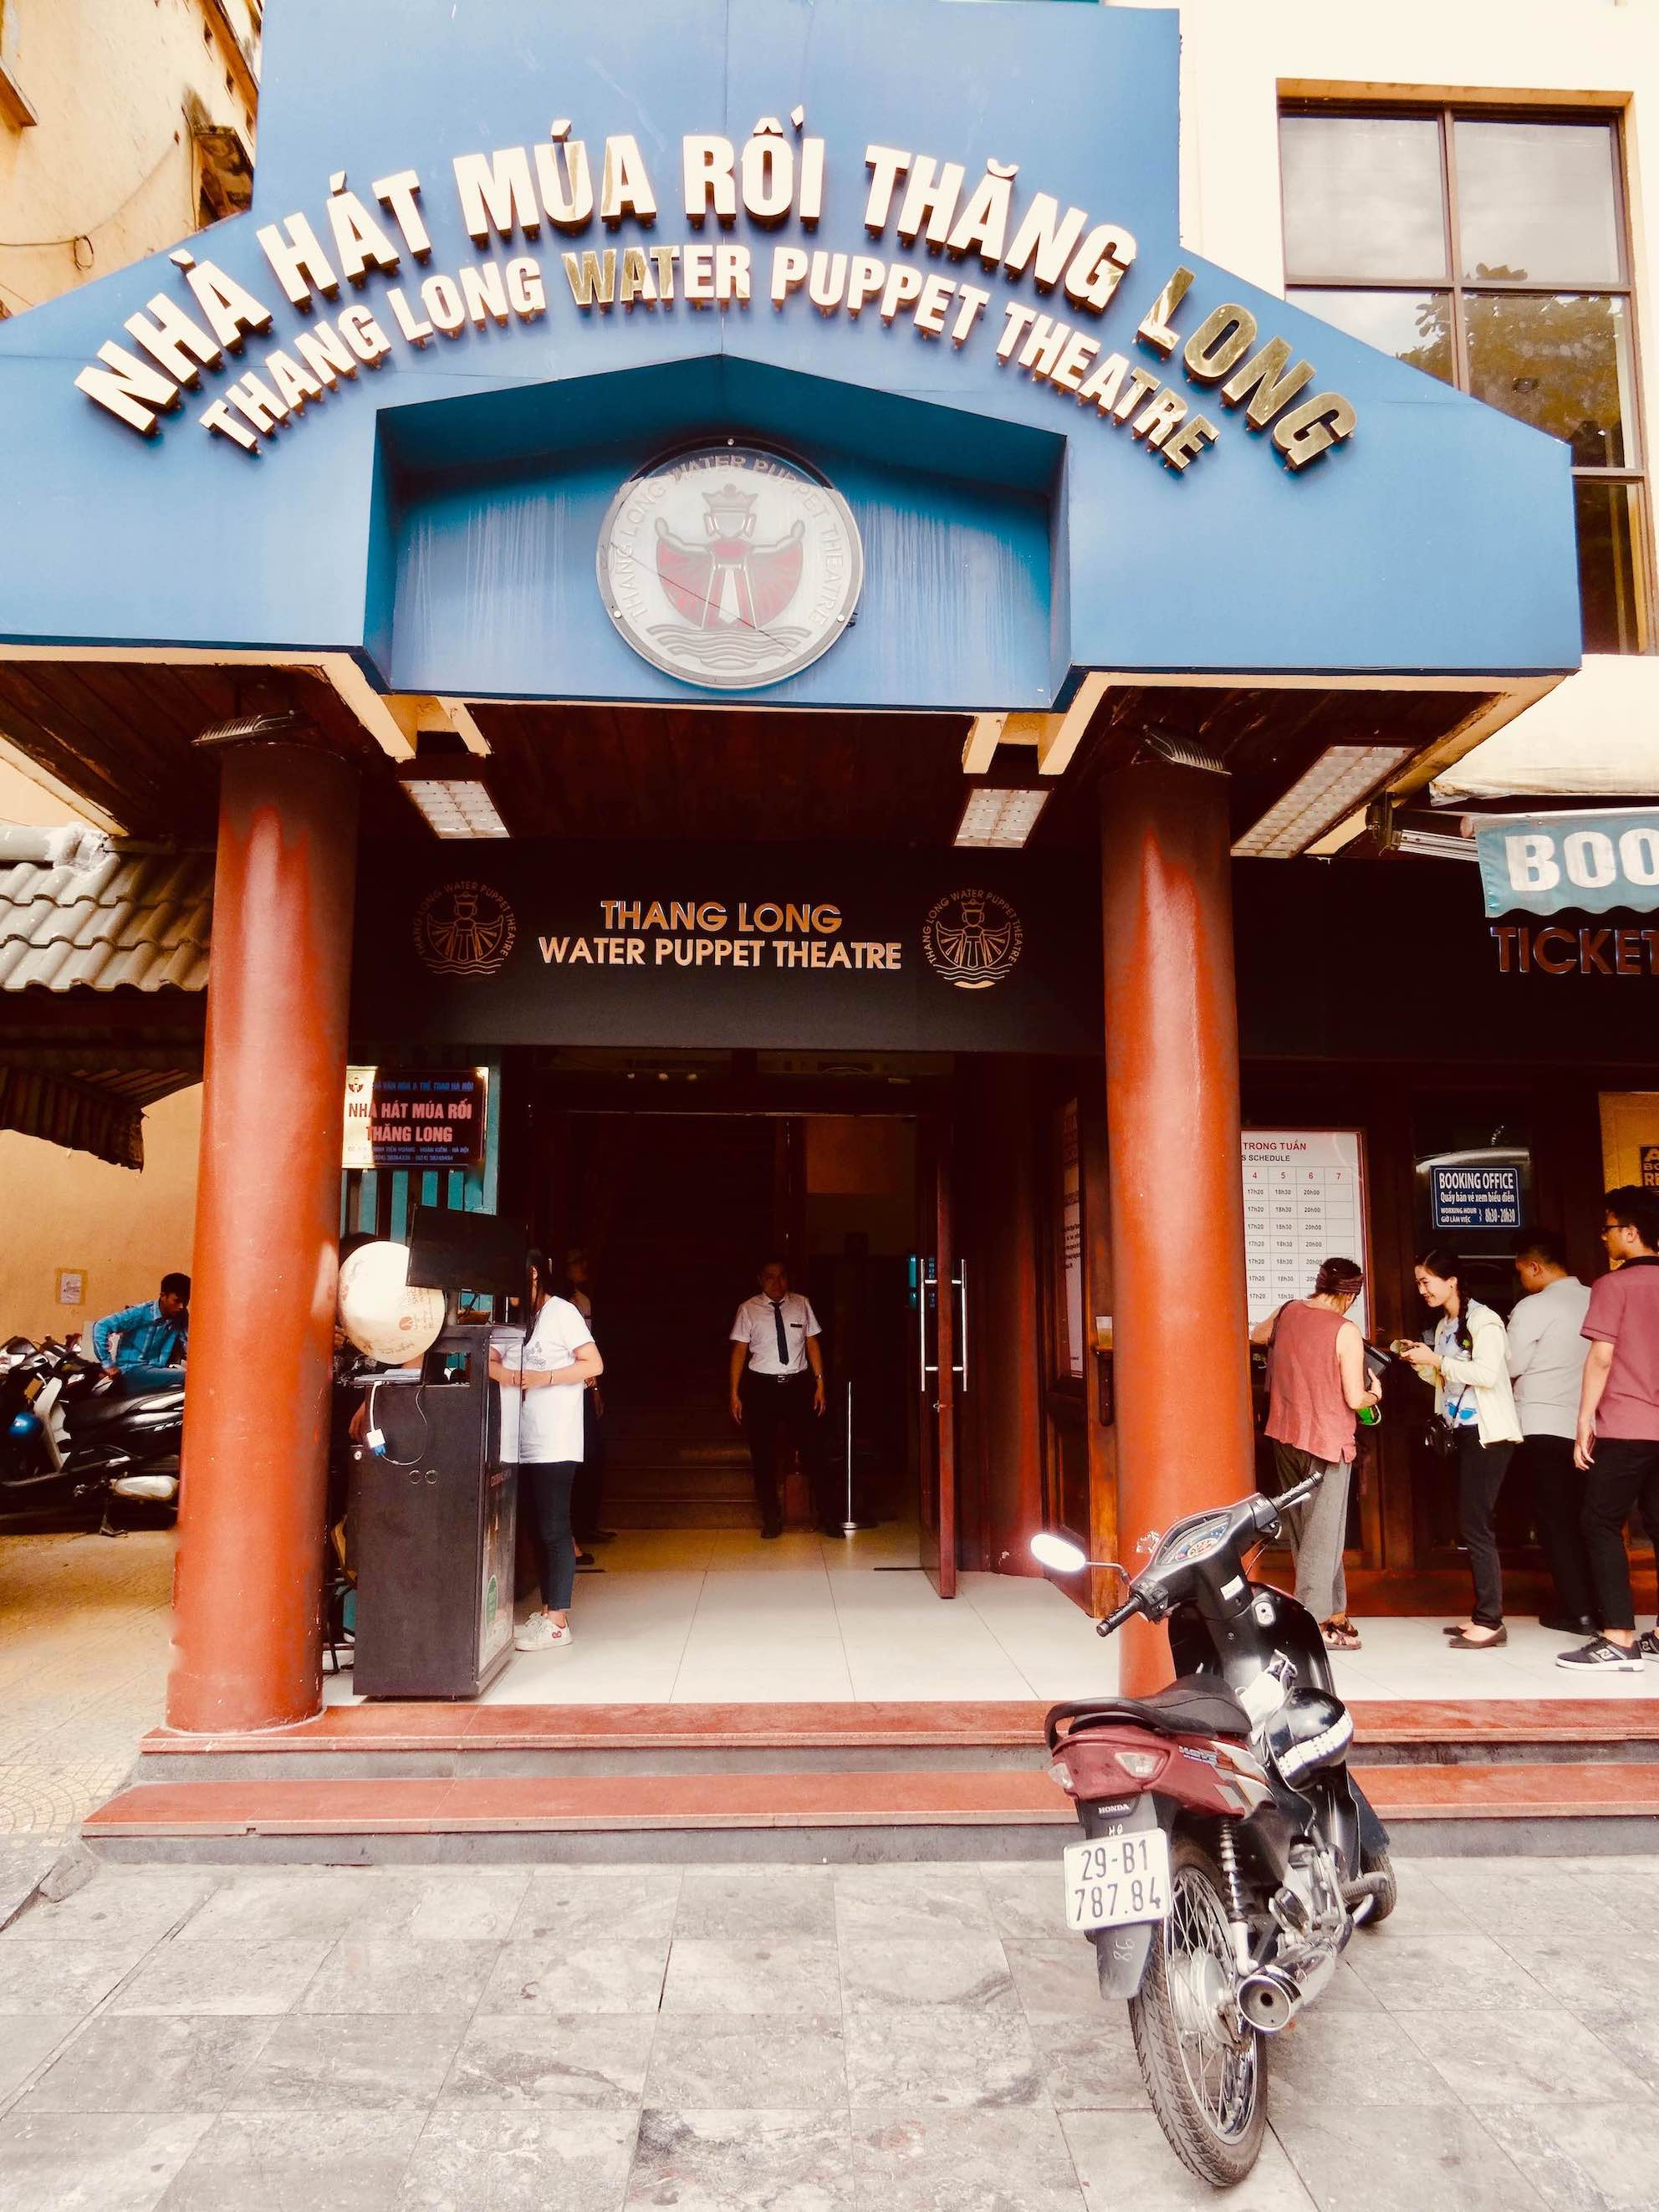 Entrance Thang Long Water Puppet Theatre